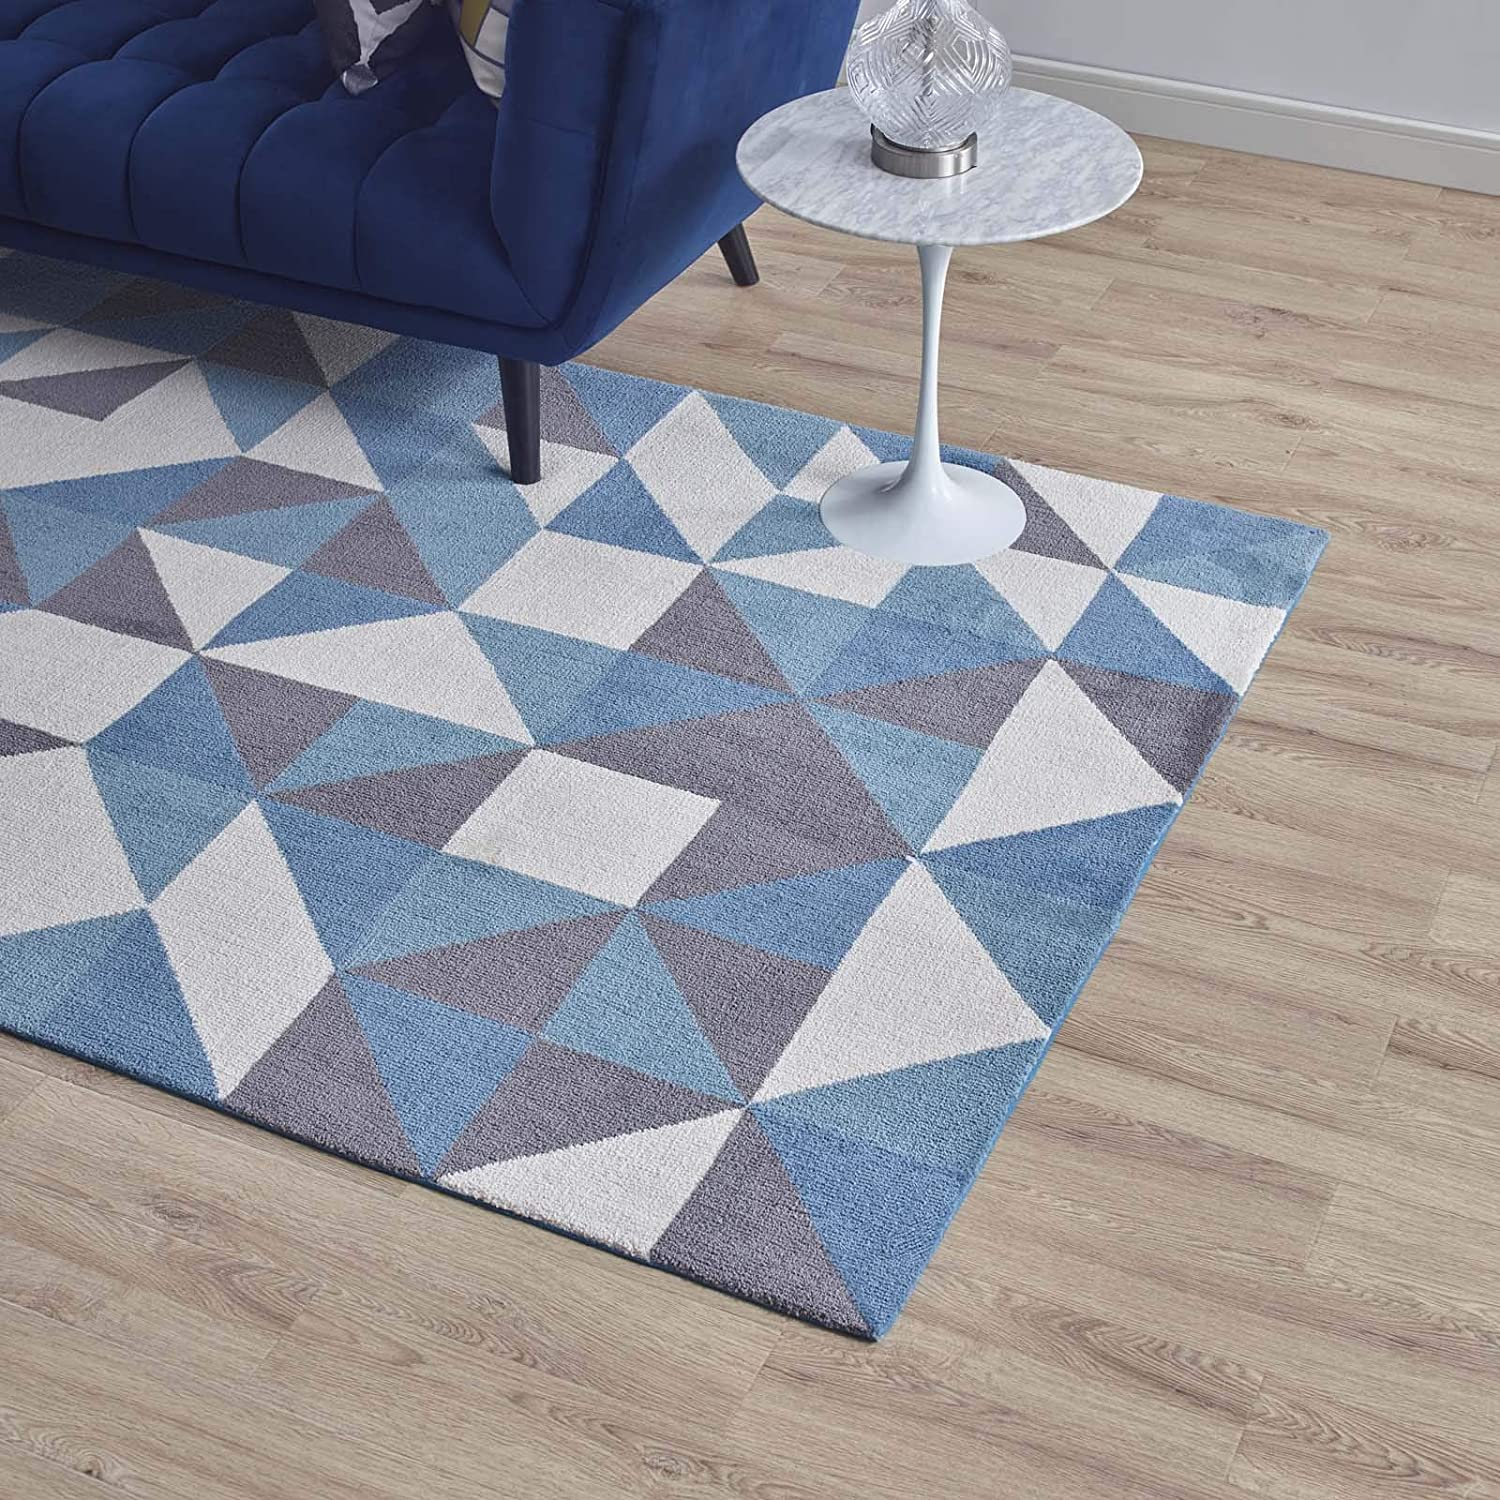 Modway Kahula Geometric Triangle Mosaic 5x8 Area Rug Blue White And Gray Amazon Ca Home Kitchen